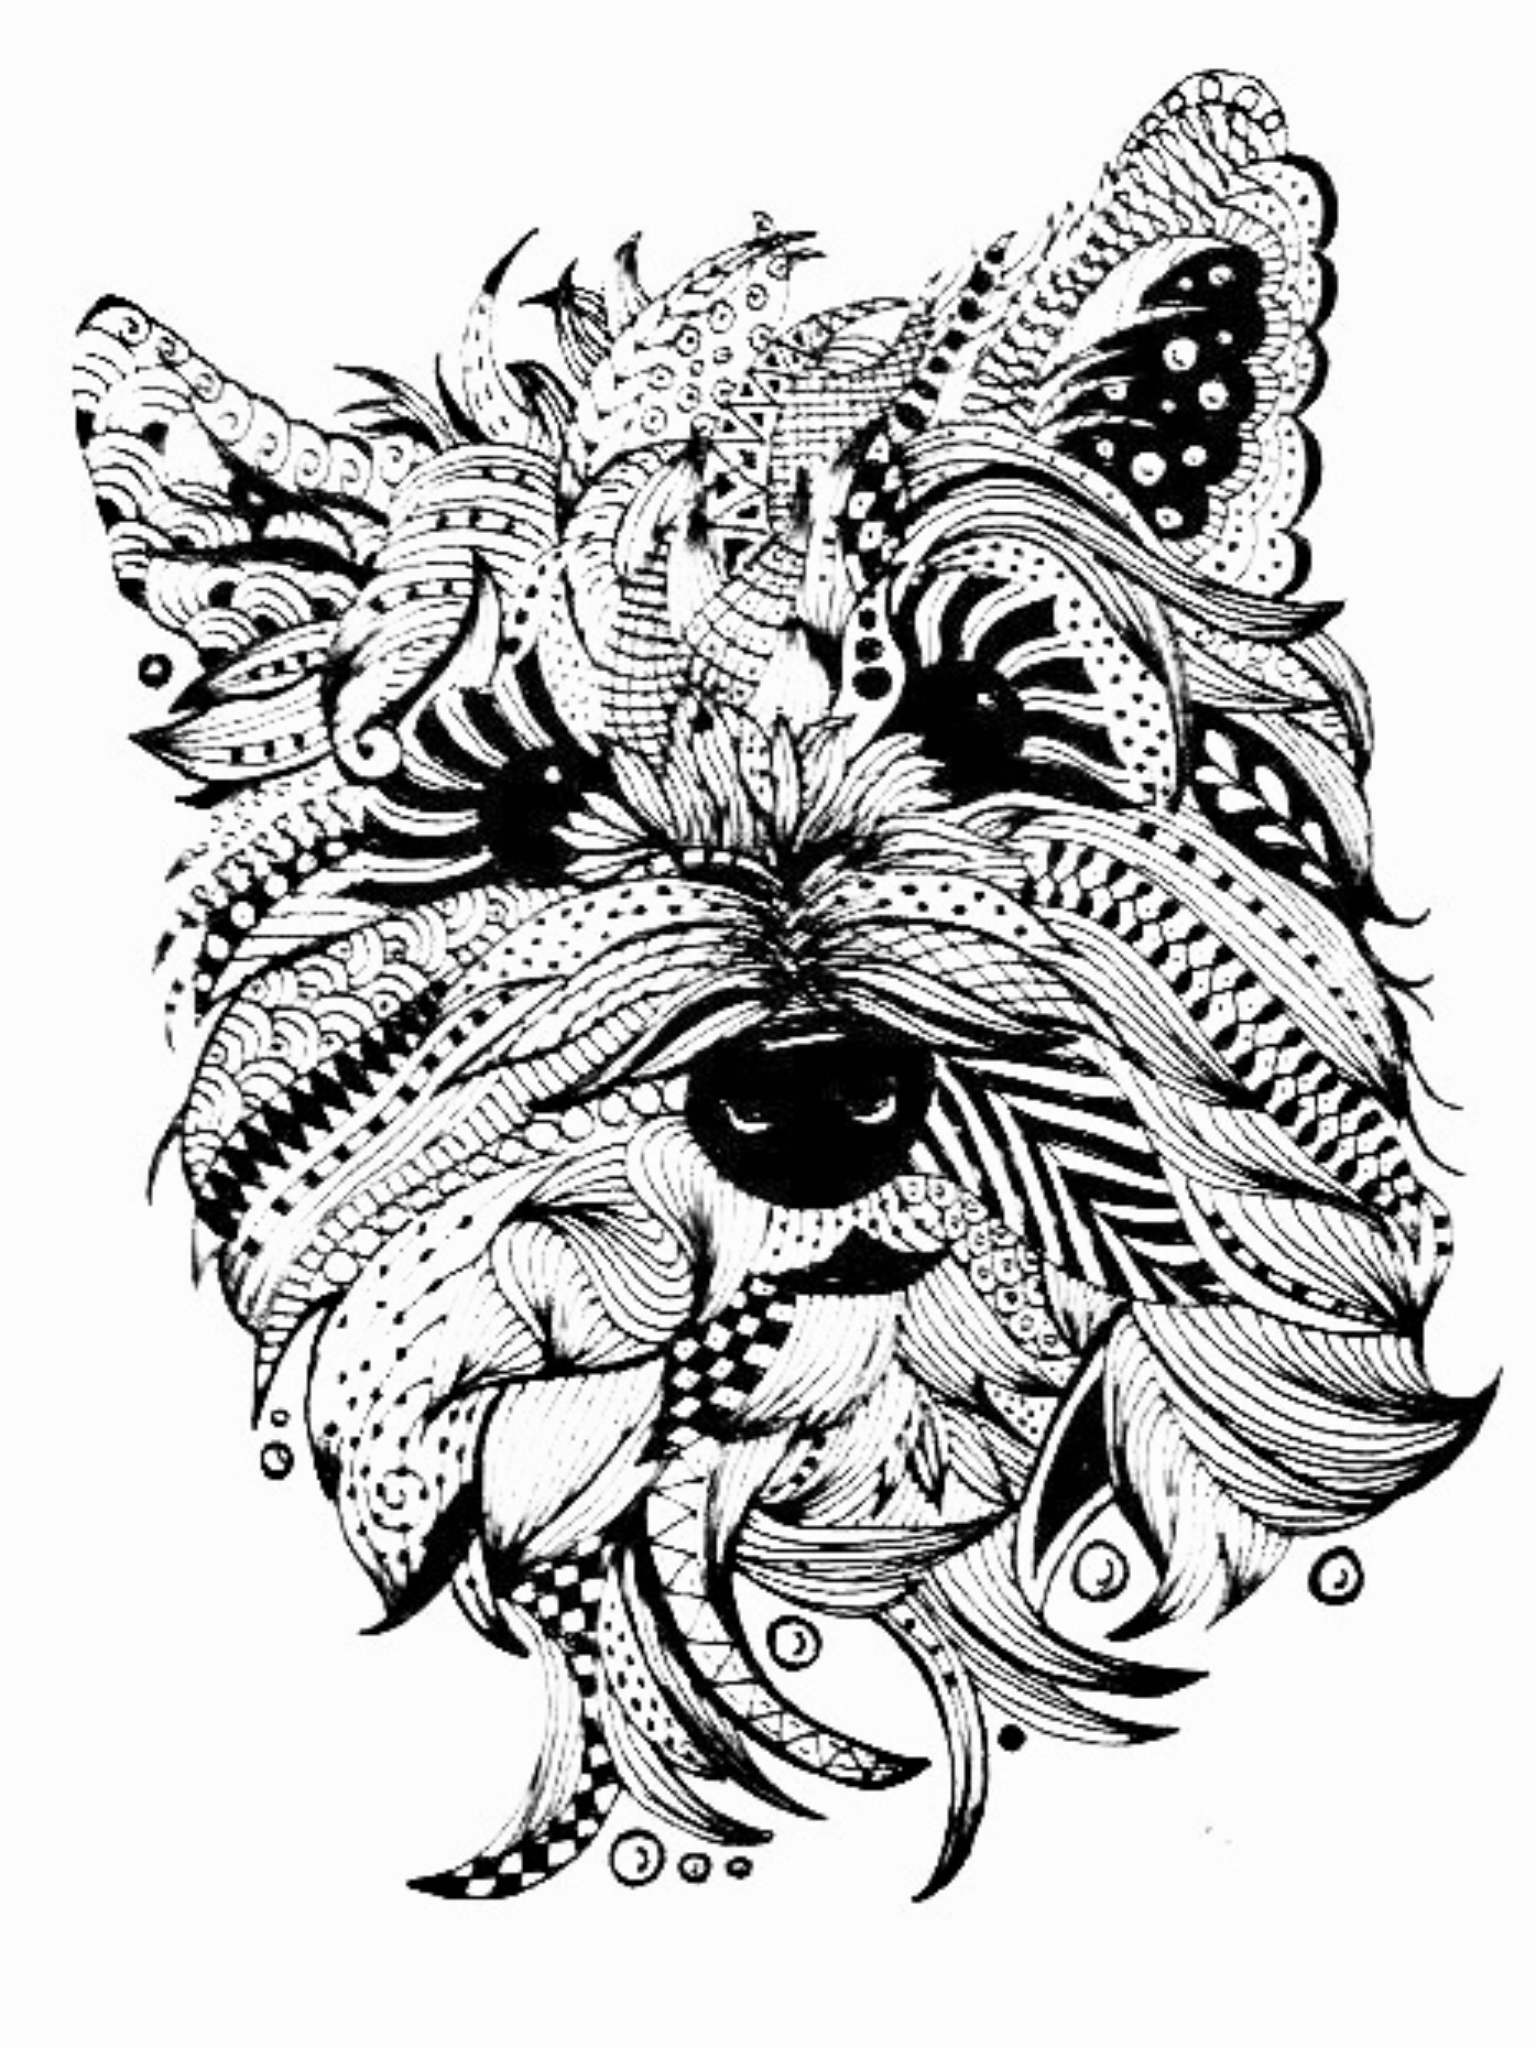 dog zentangle coloring pages zentangle hand drawing dog for antistress coloring pages zentangle dog pages coloring